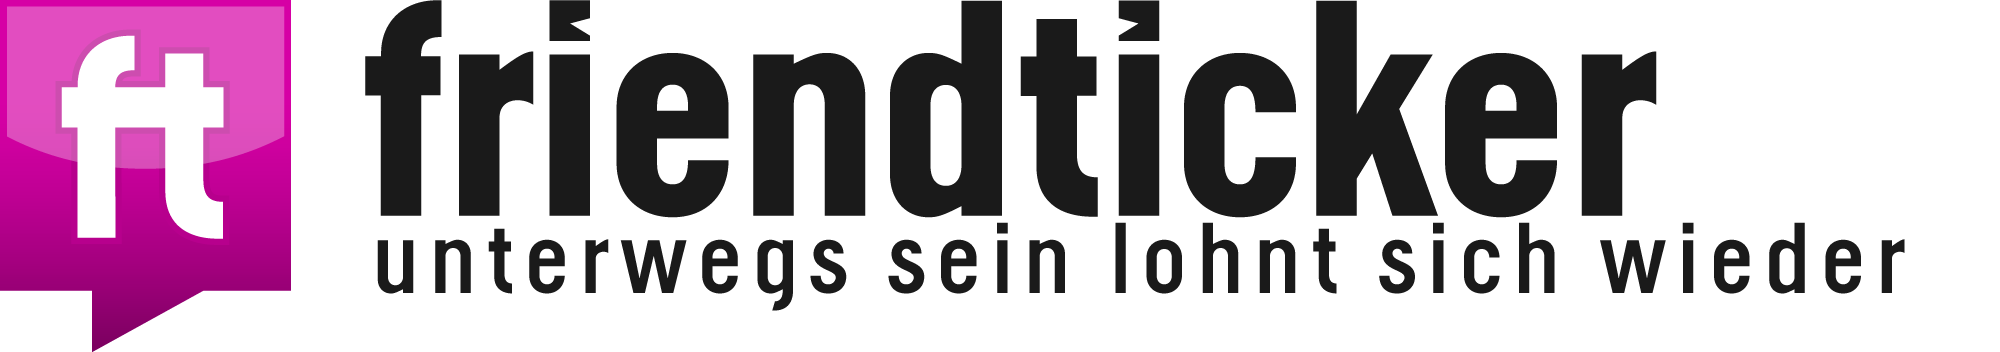 friendticker_logo